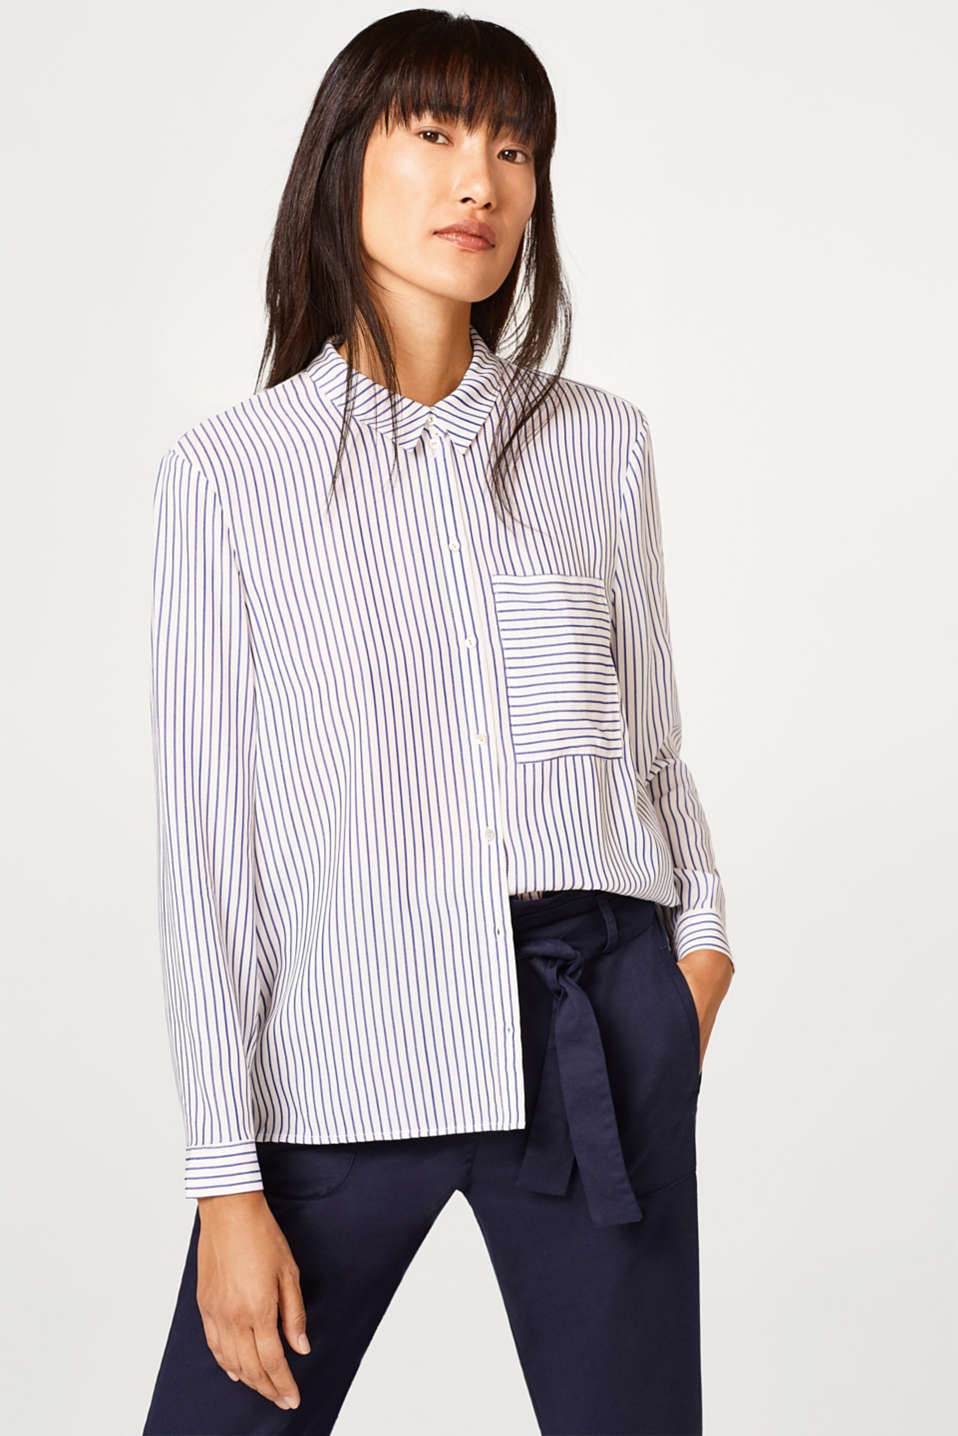 Esprit - Lightweight striped blouse with a large front pocket